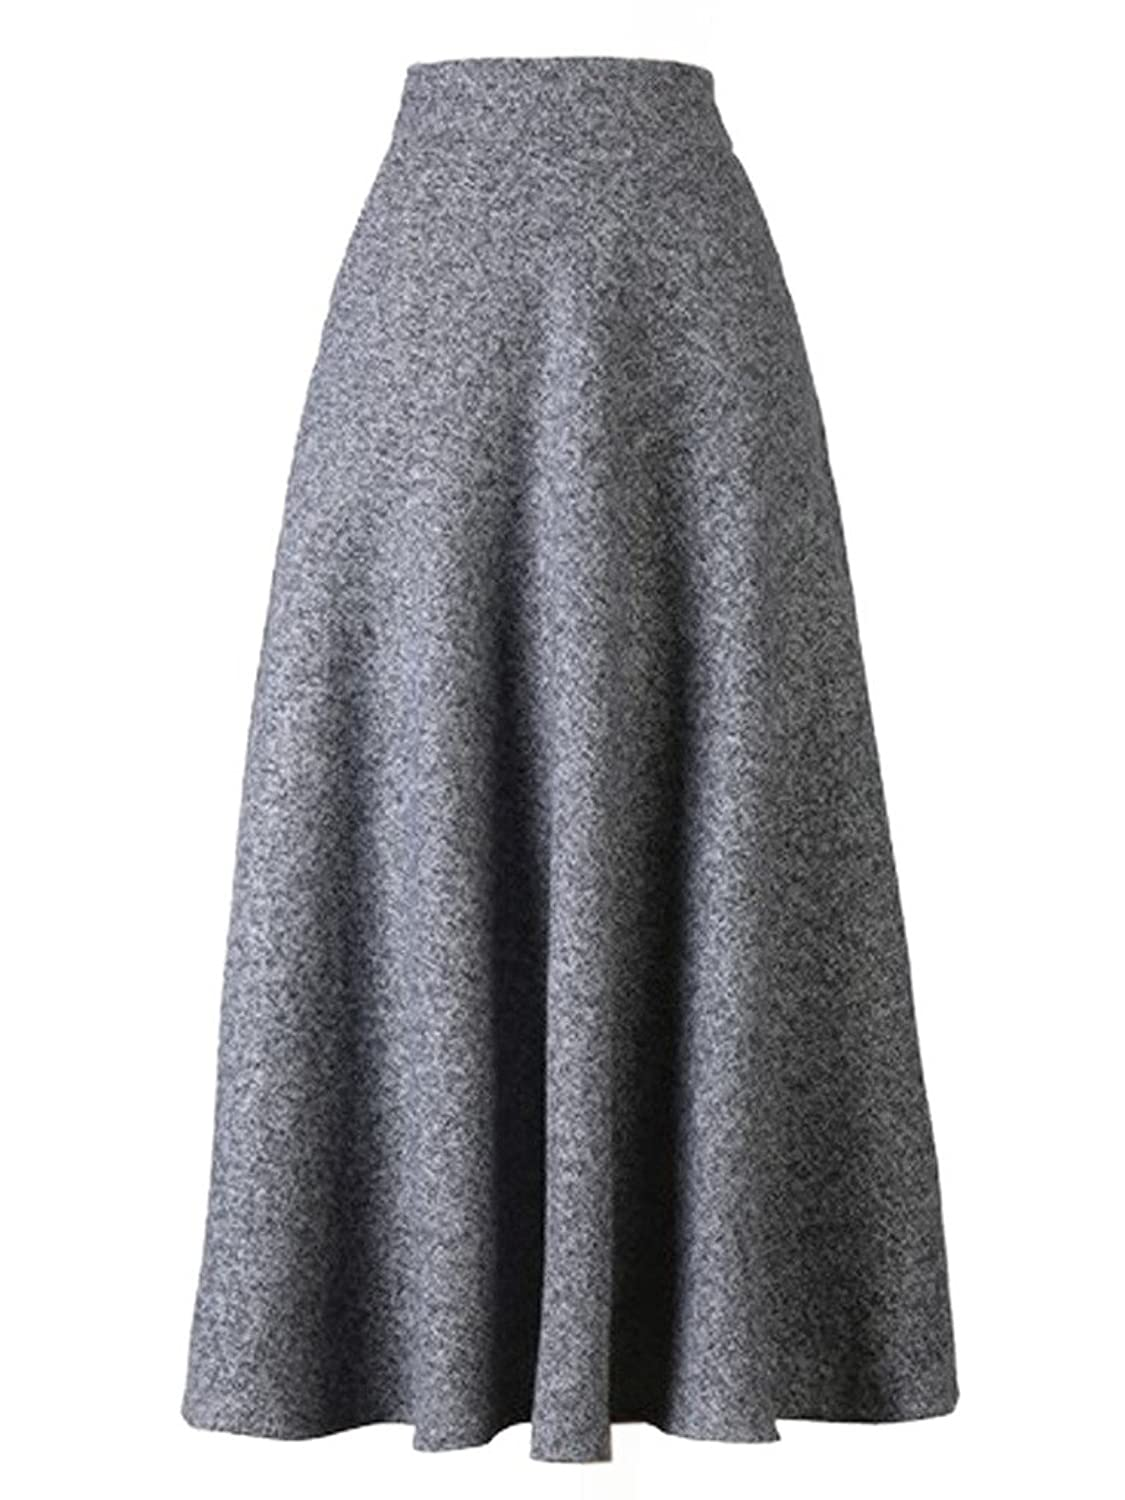 1900-1910s Clothing Choies Womens High Waist A-line Flared Long Skirt Winter Fall Midi Skirt $33.99 AT vintagedancer.com